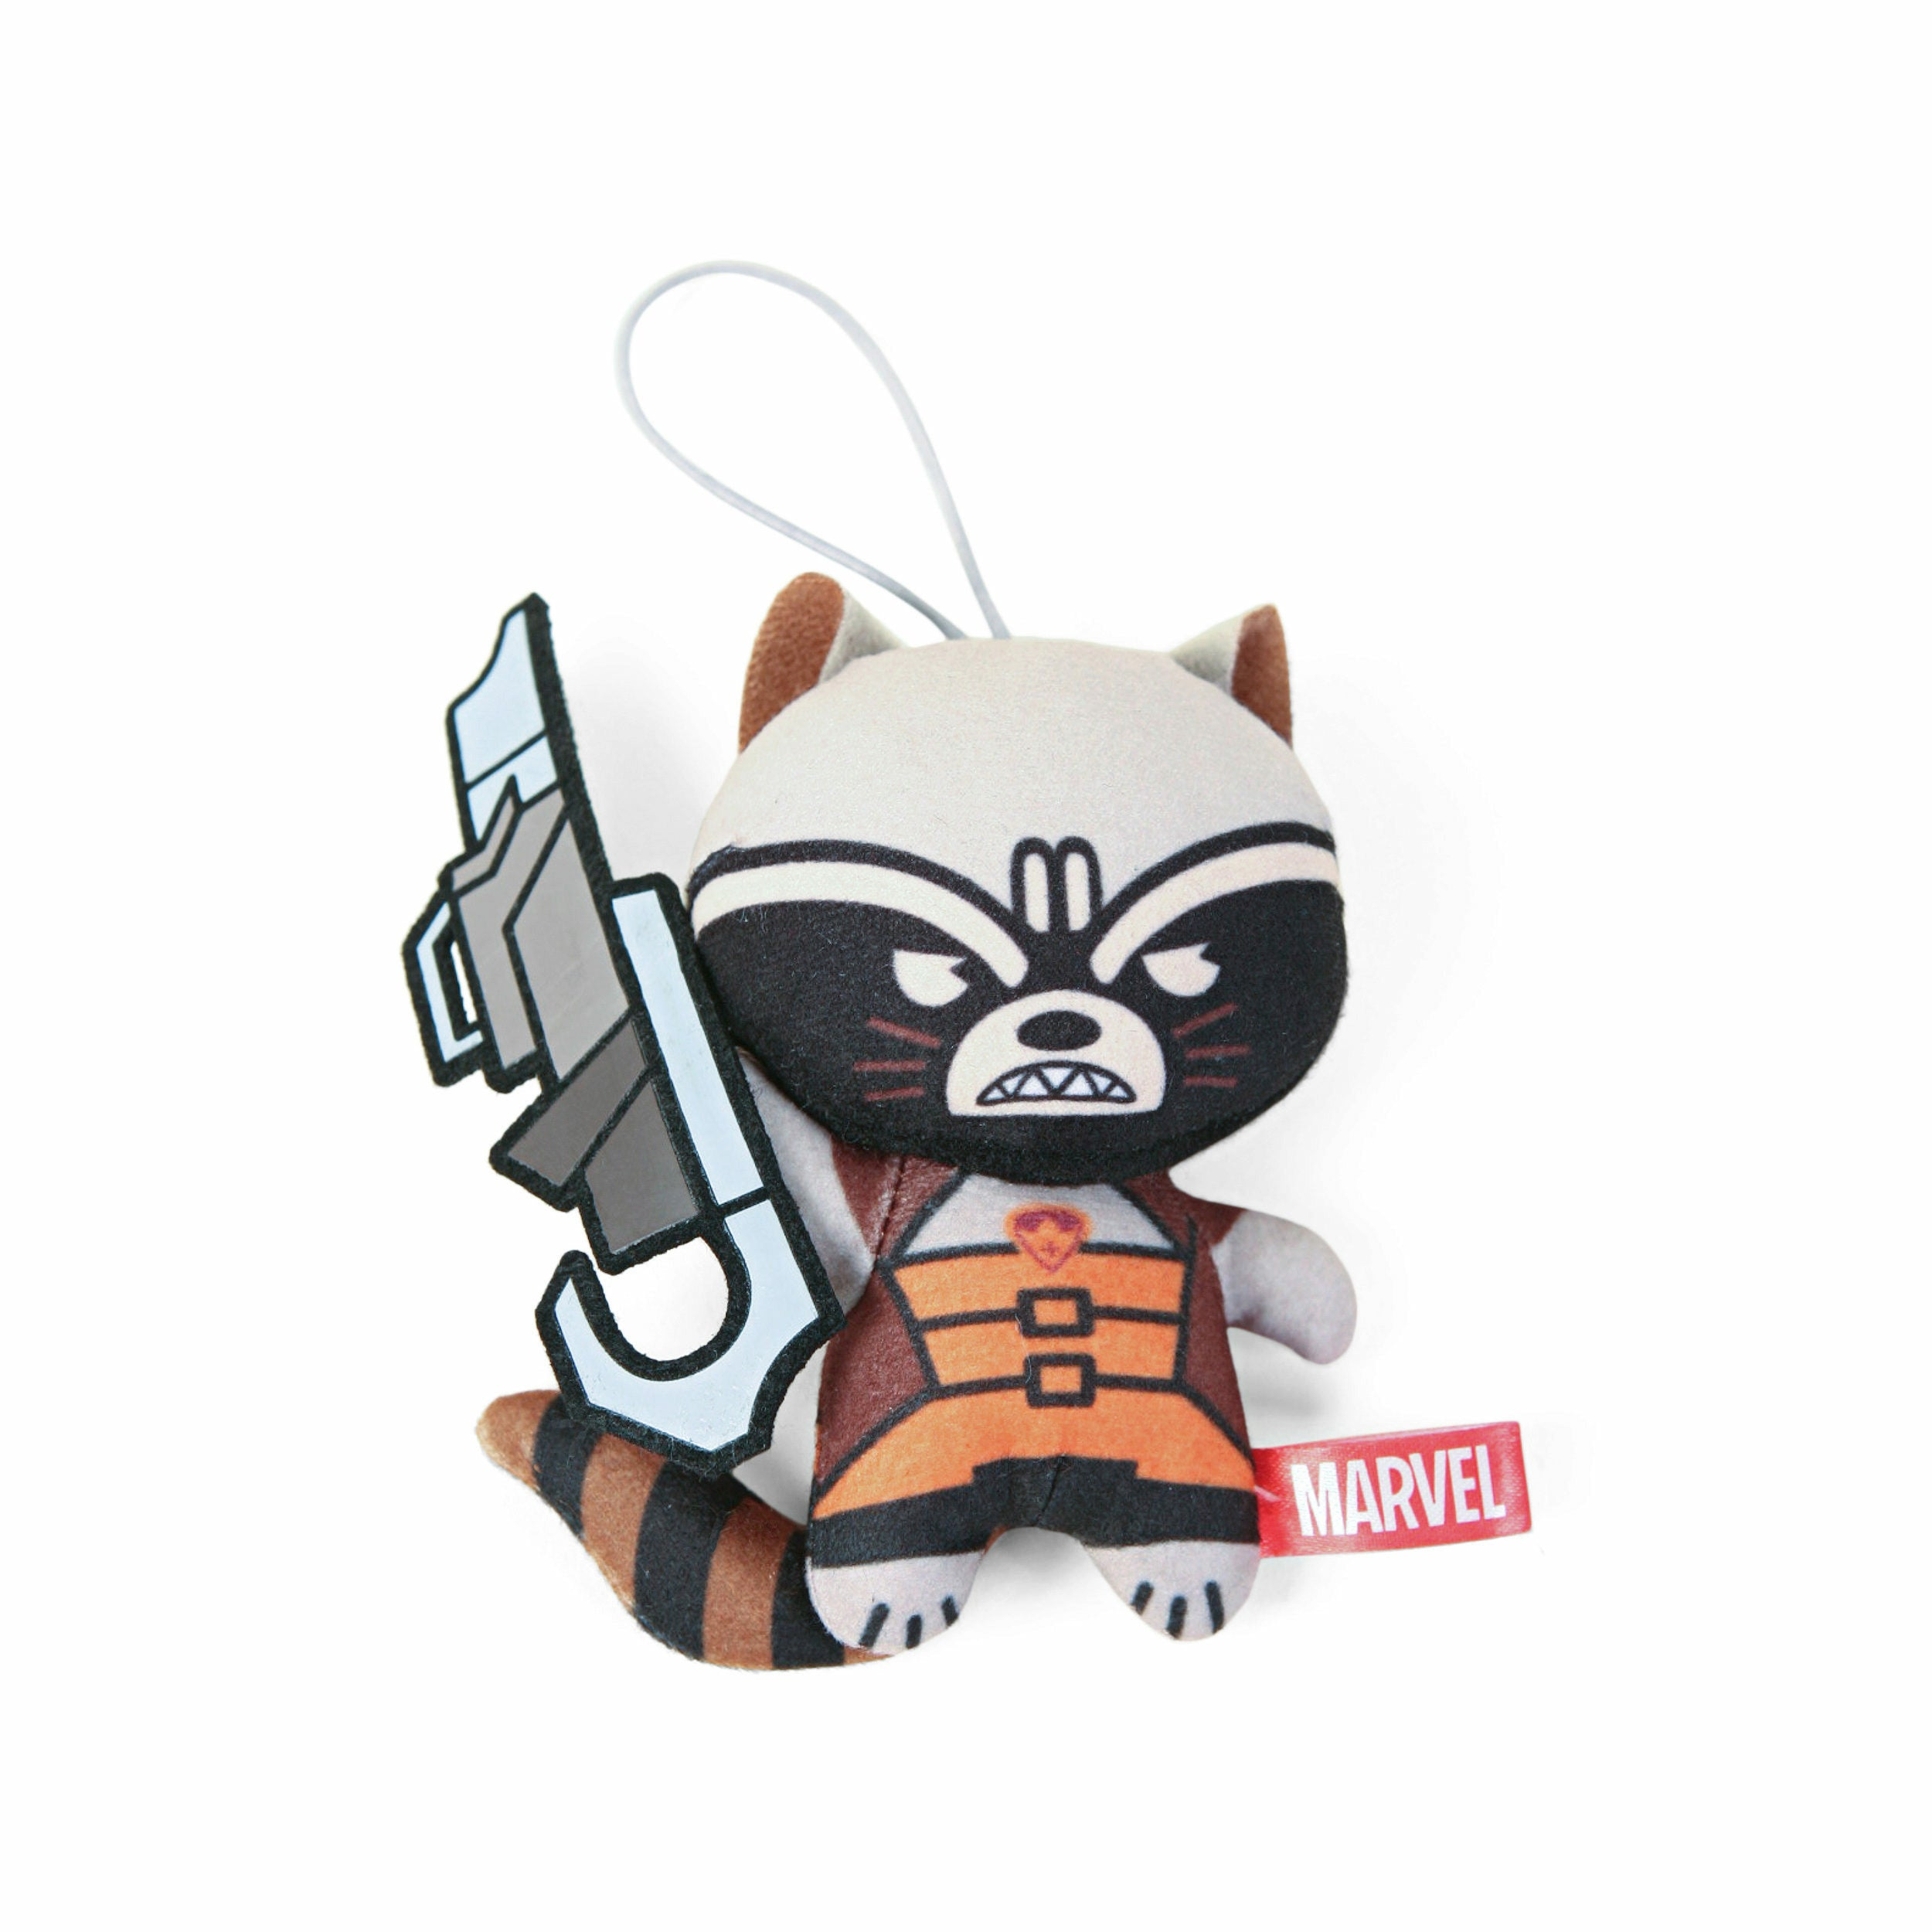 Marvel Kawaii Art Collection Ver. 2 Rocket Raccoon Plush Toy